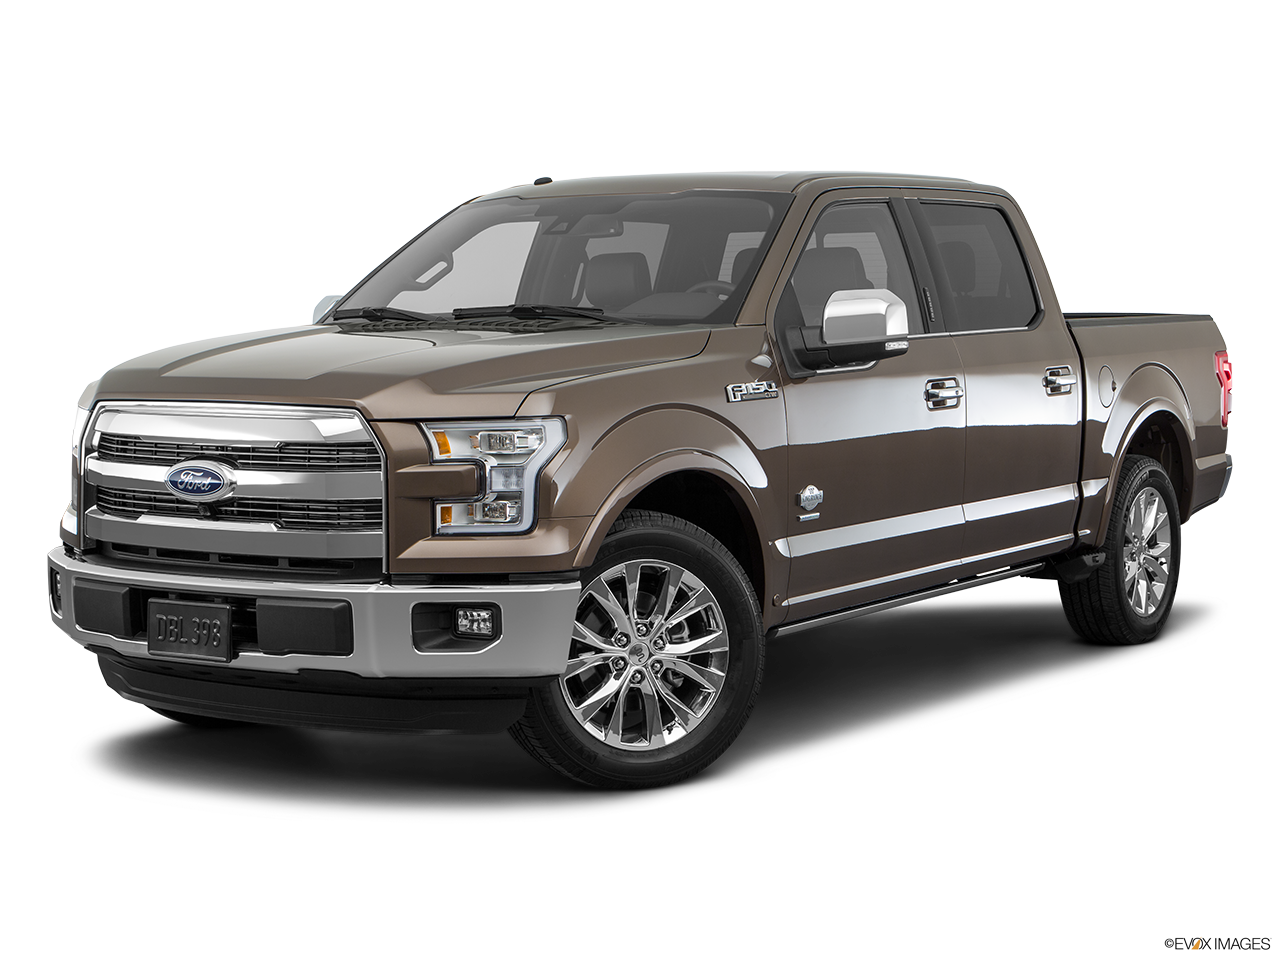 Test Drive A 2016 Ford F-150 at All Star Ford Canton in Canton